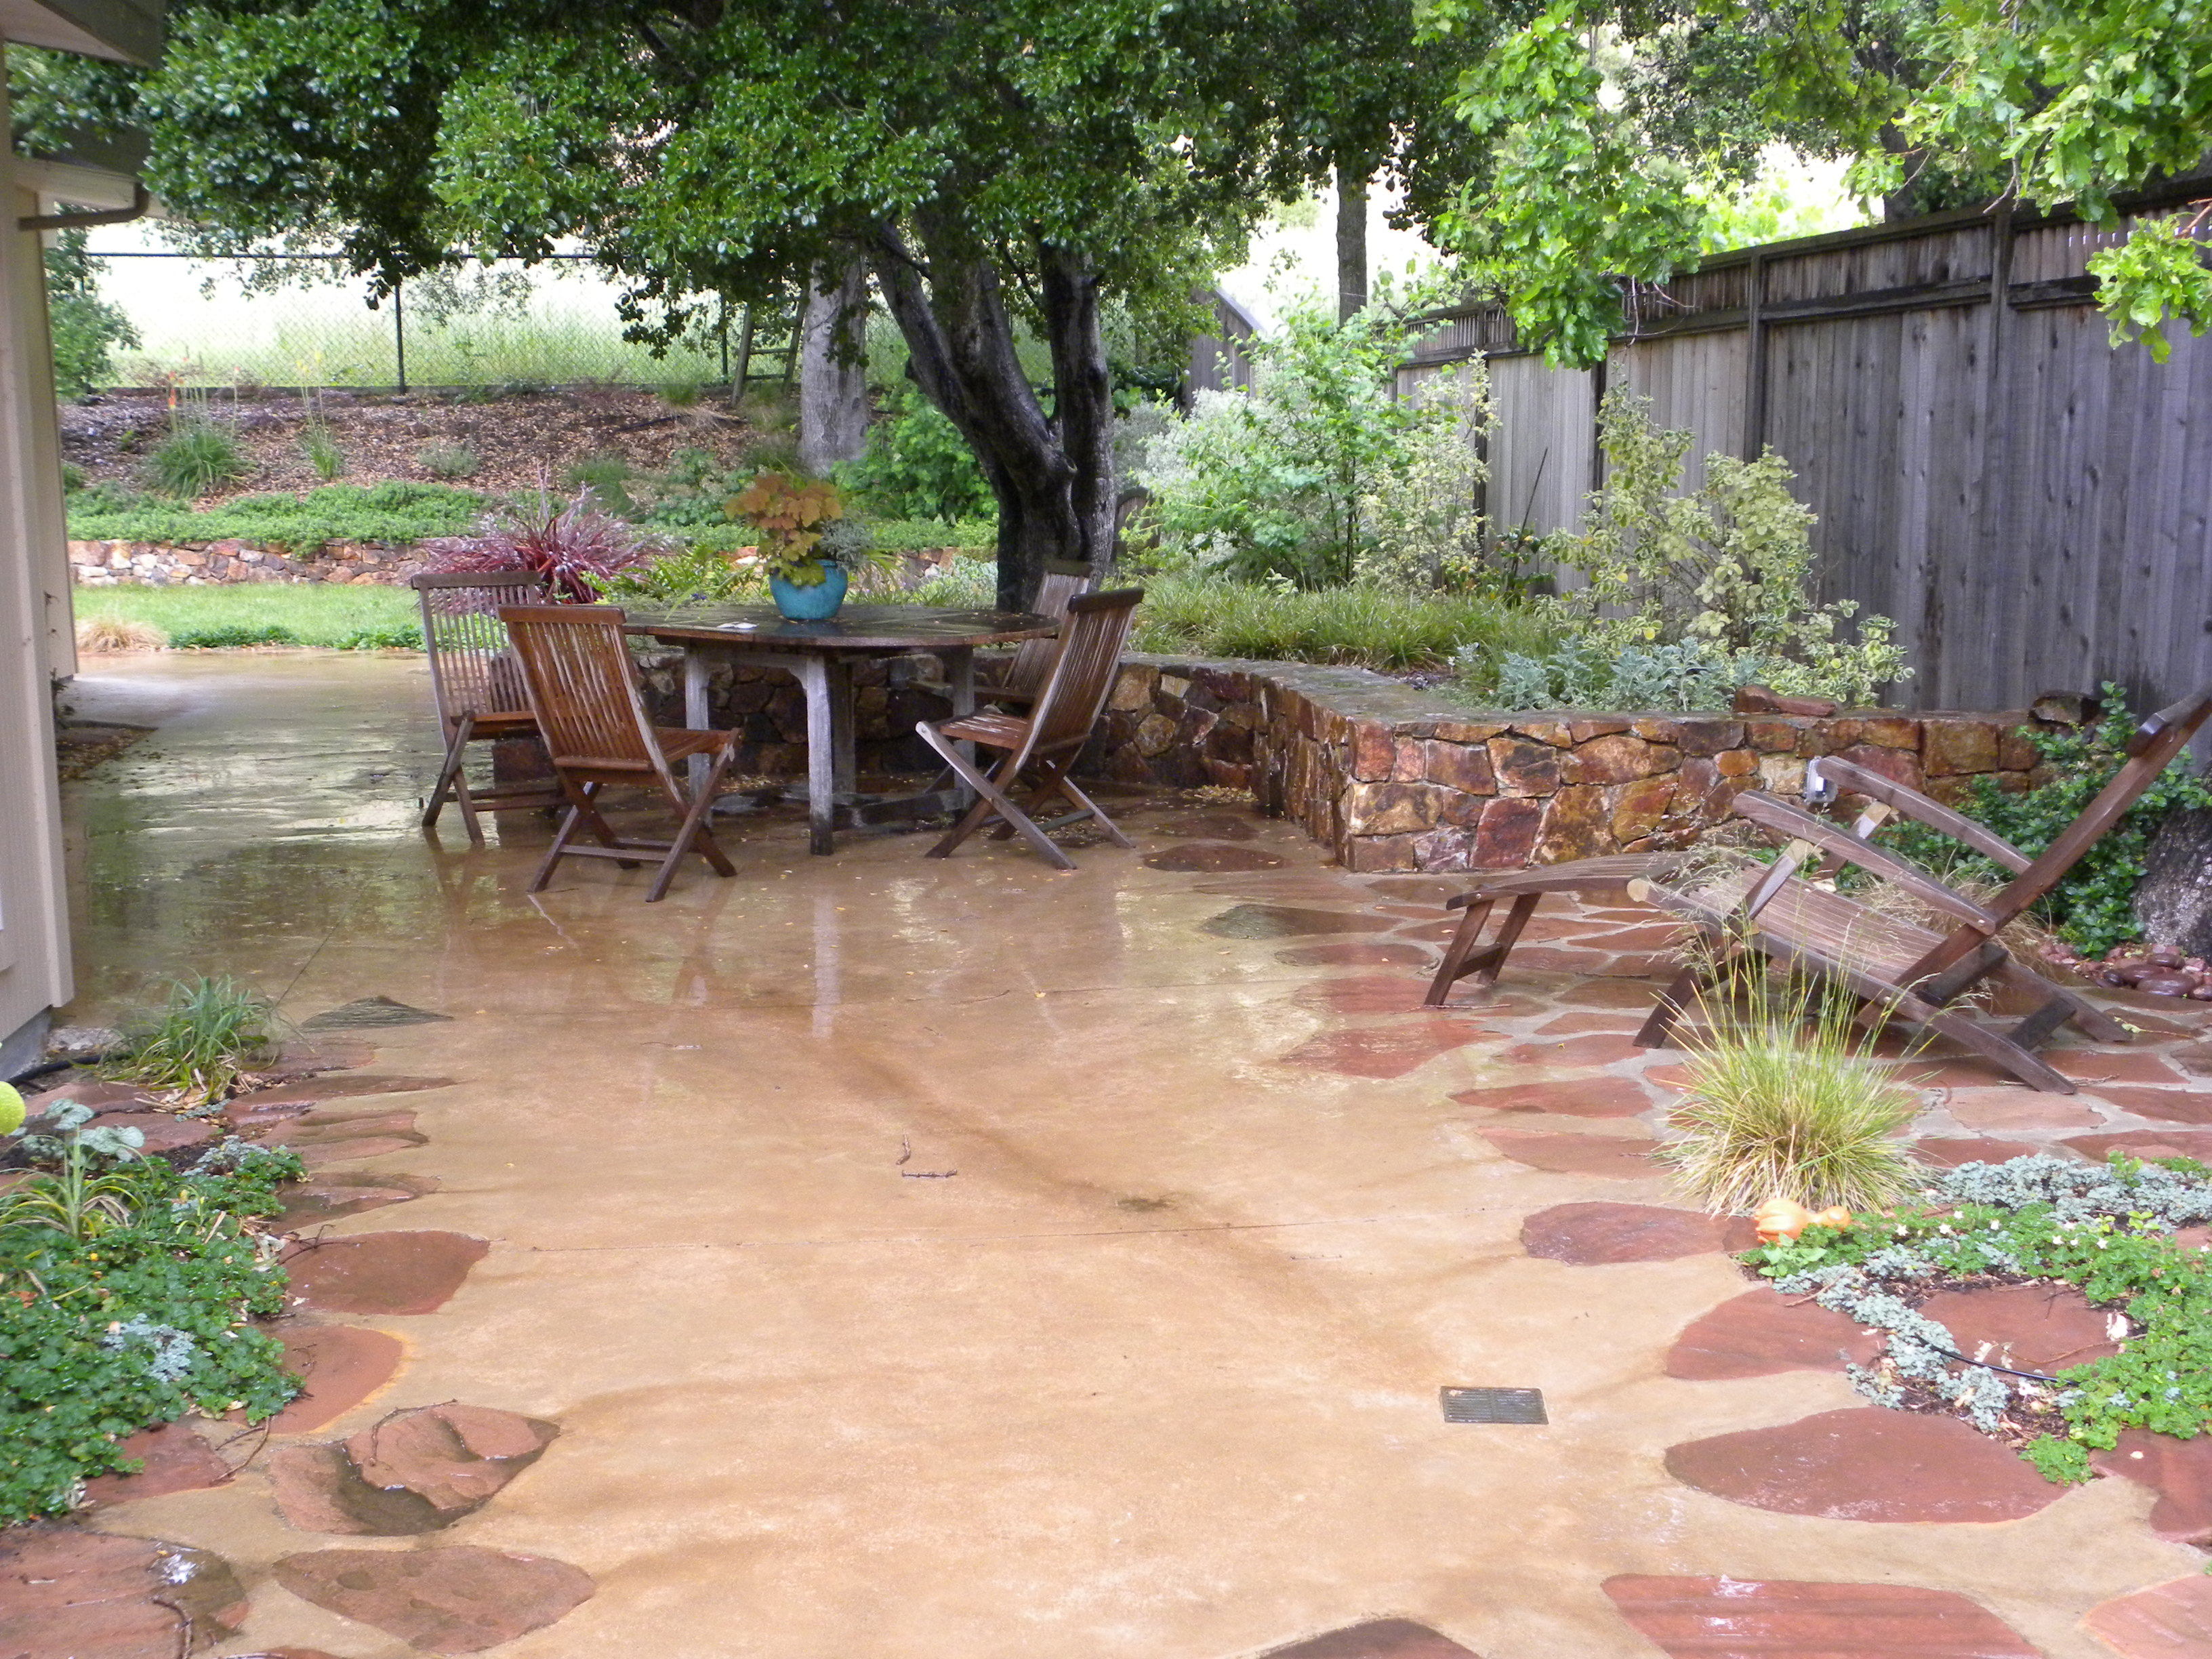 Concrete patio ideas | The Human Footprint on Backyard Masonry Ideas id=30181